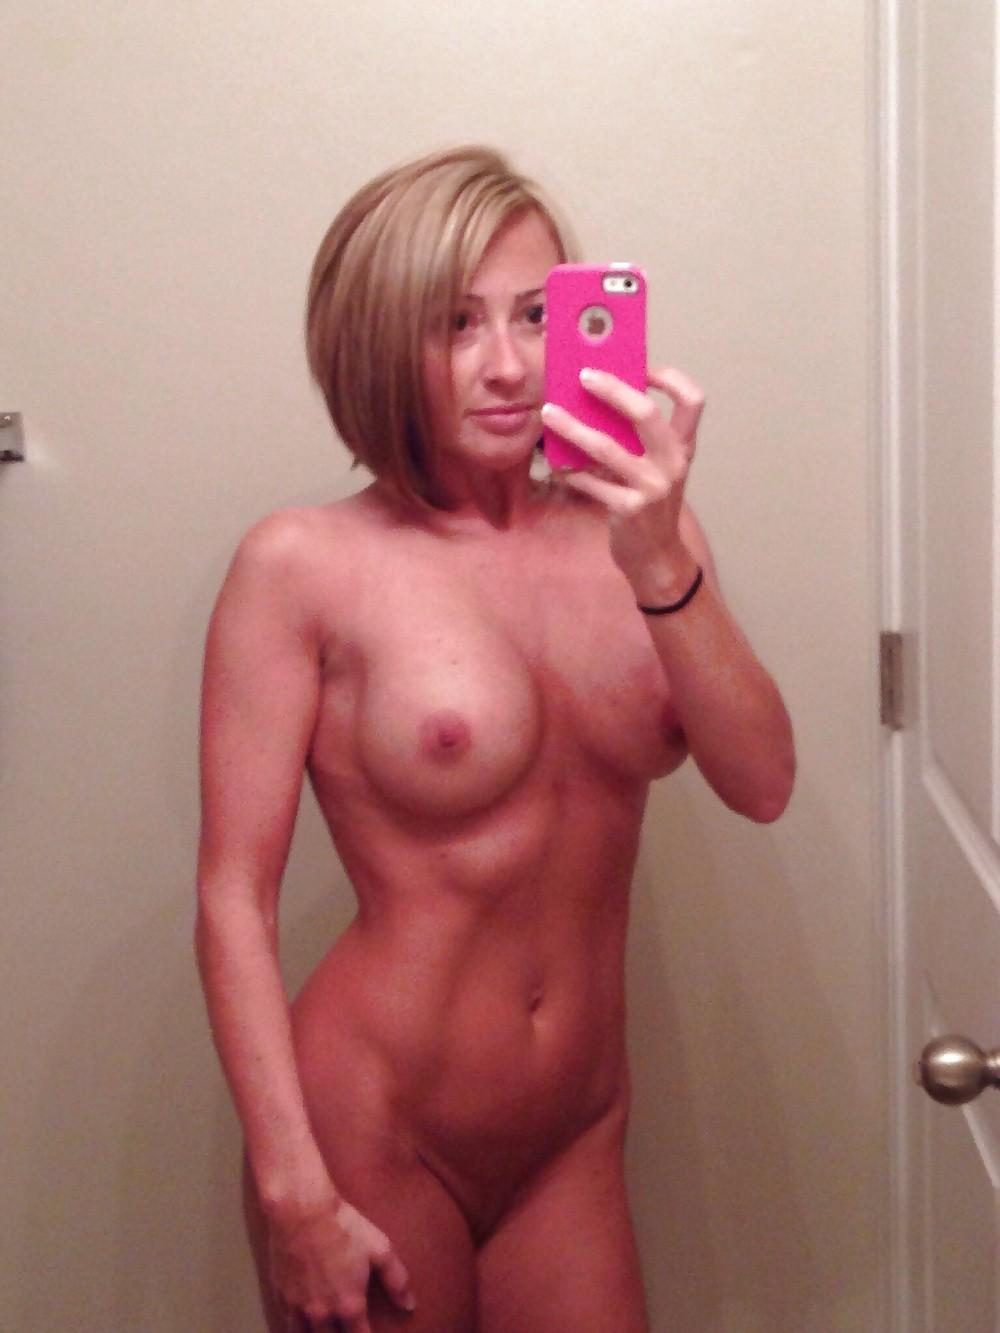 Athletic MILF lady mirror selfie. Top nudity solo spectacle along busty blonde beauty amateur MILF babe